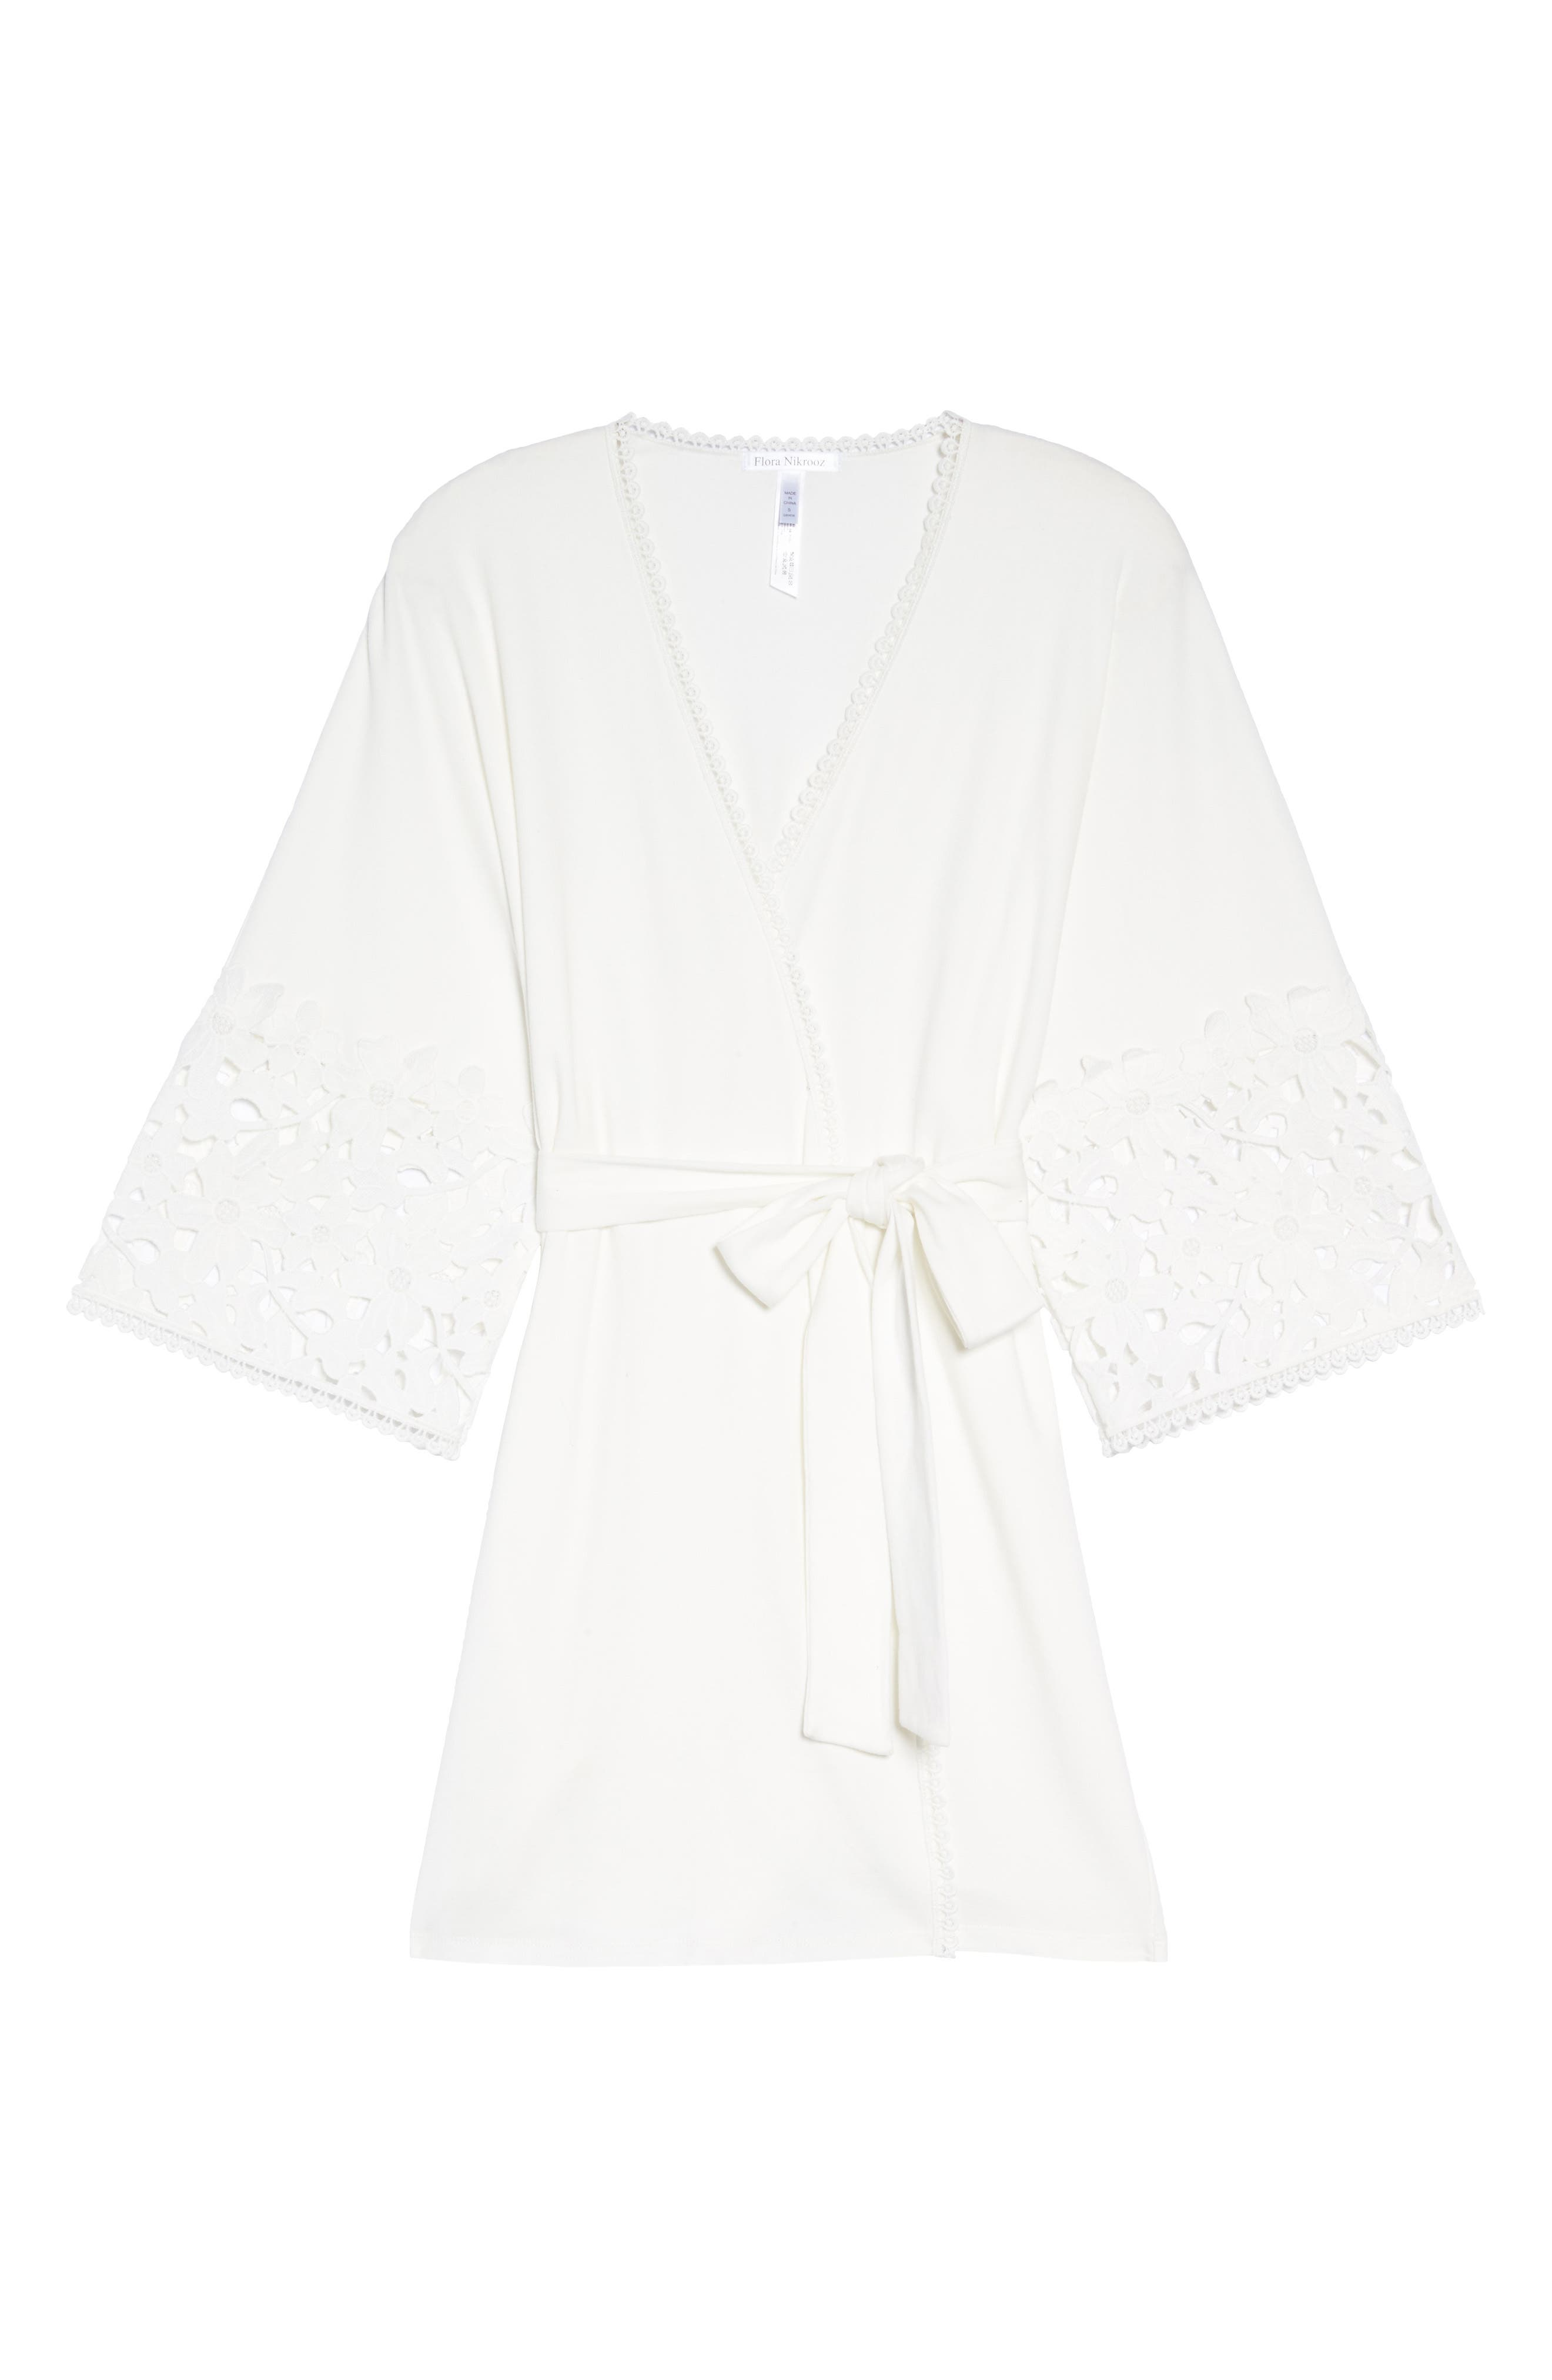 Kendall Robe,                             Alternate thumbnail 6, color,                             900